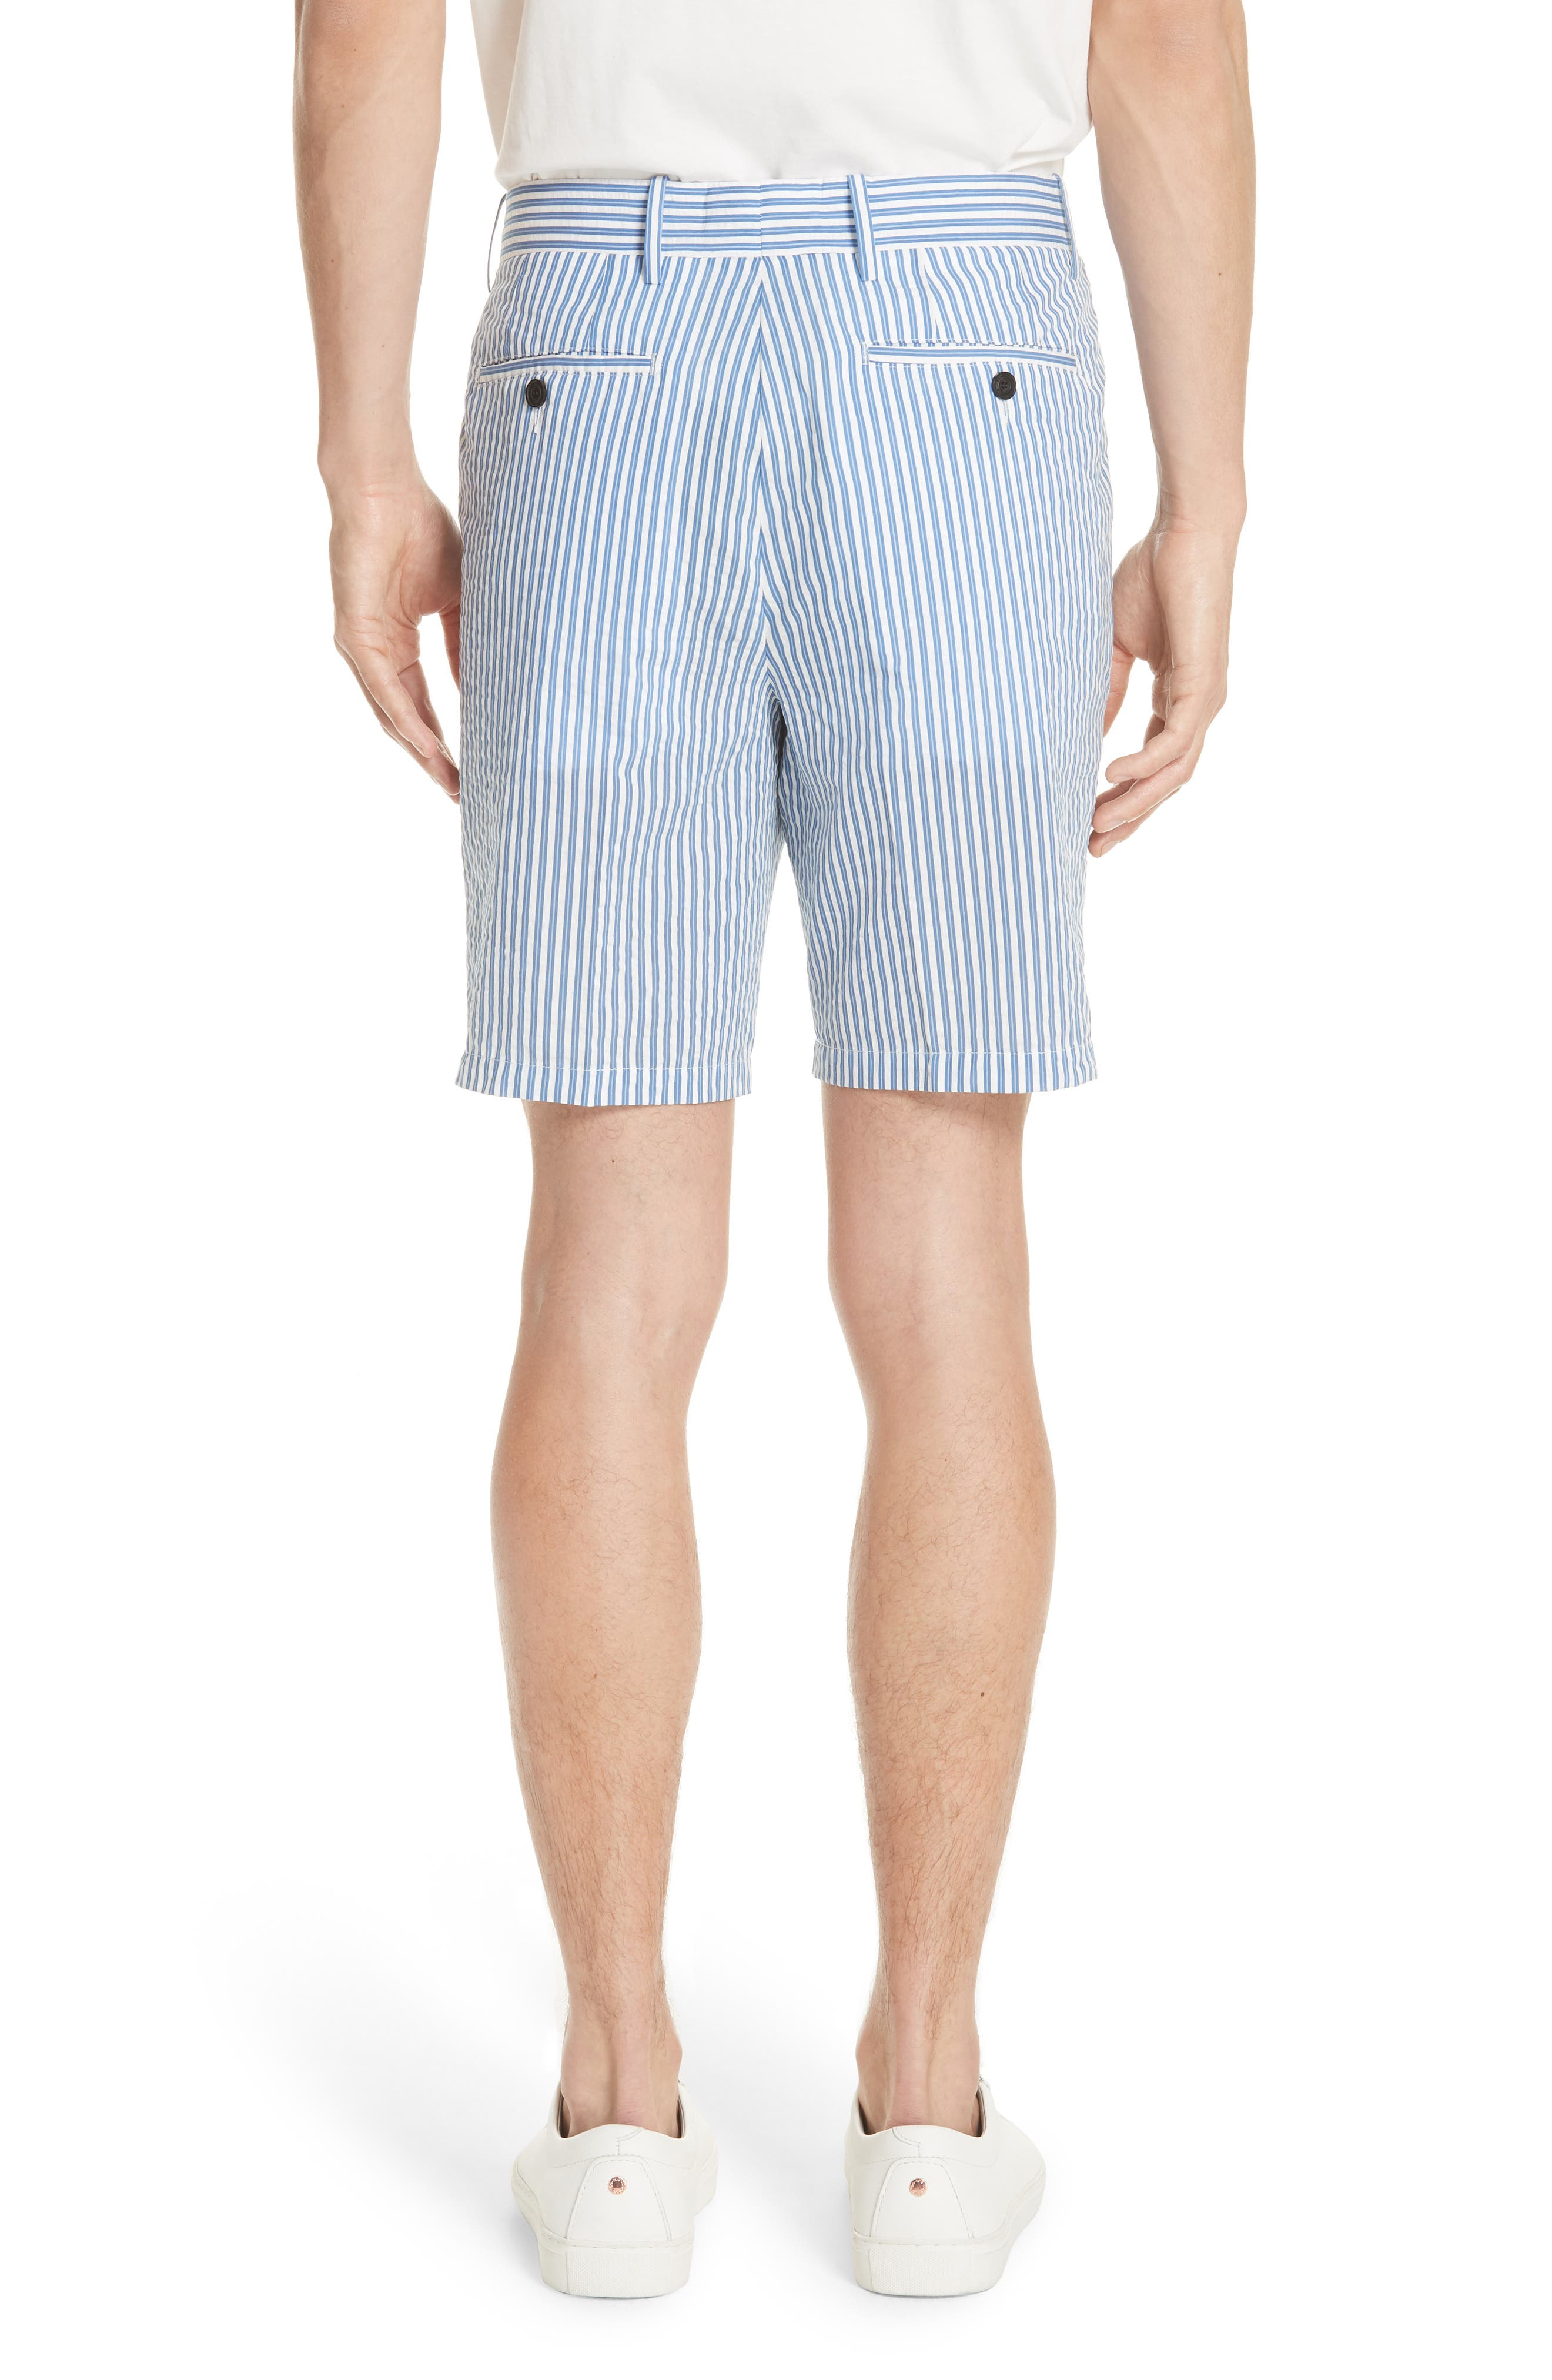 Serpentine Stripe Shorts,                             Alternate thumbnail 2, color,                             Navy